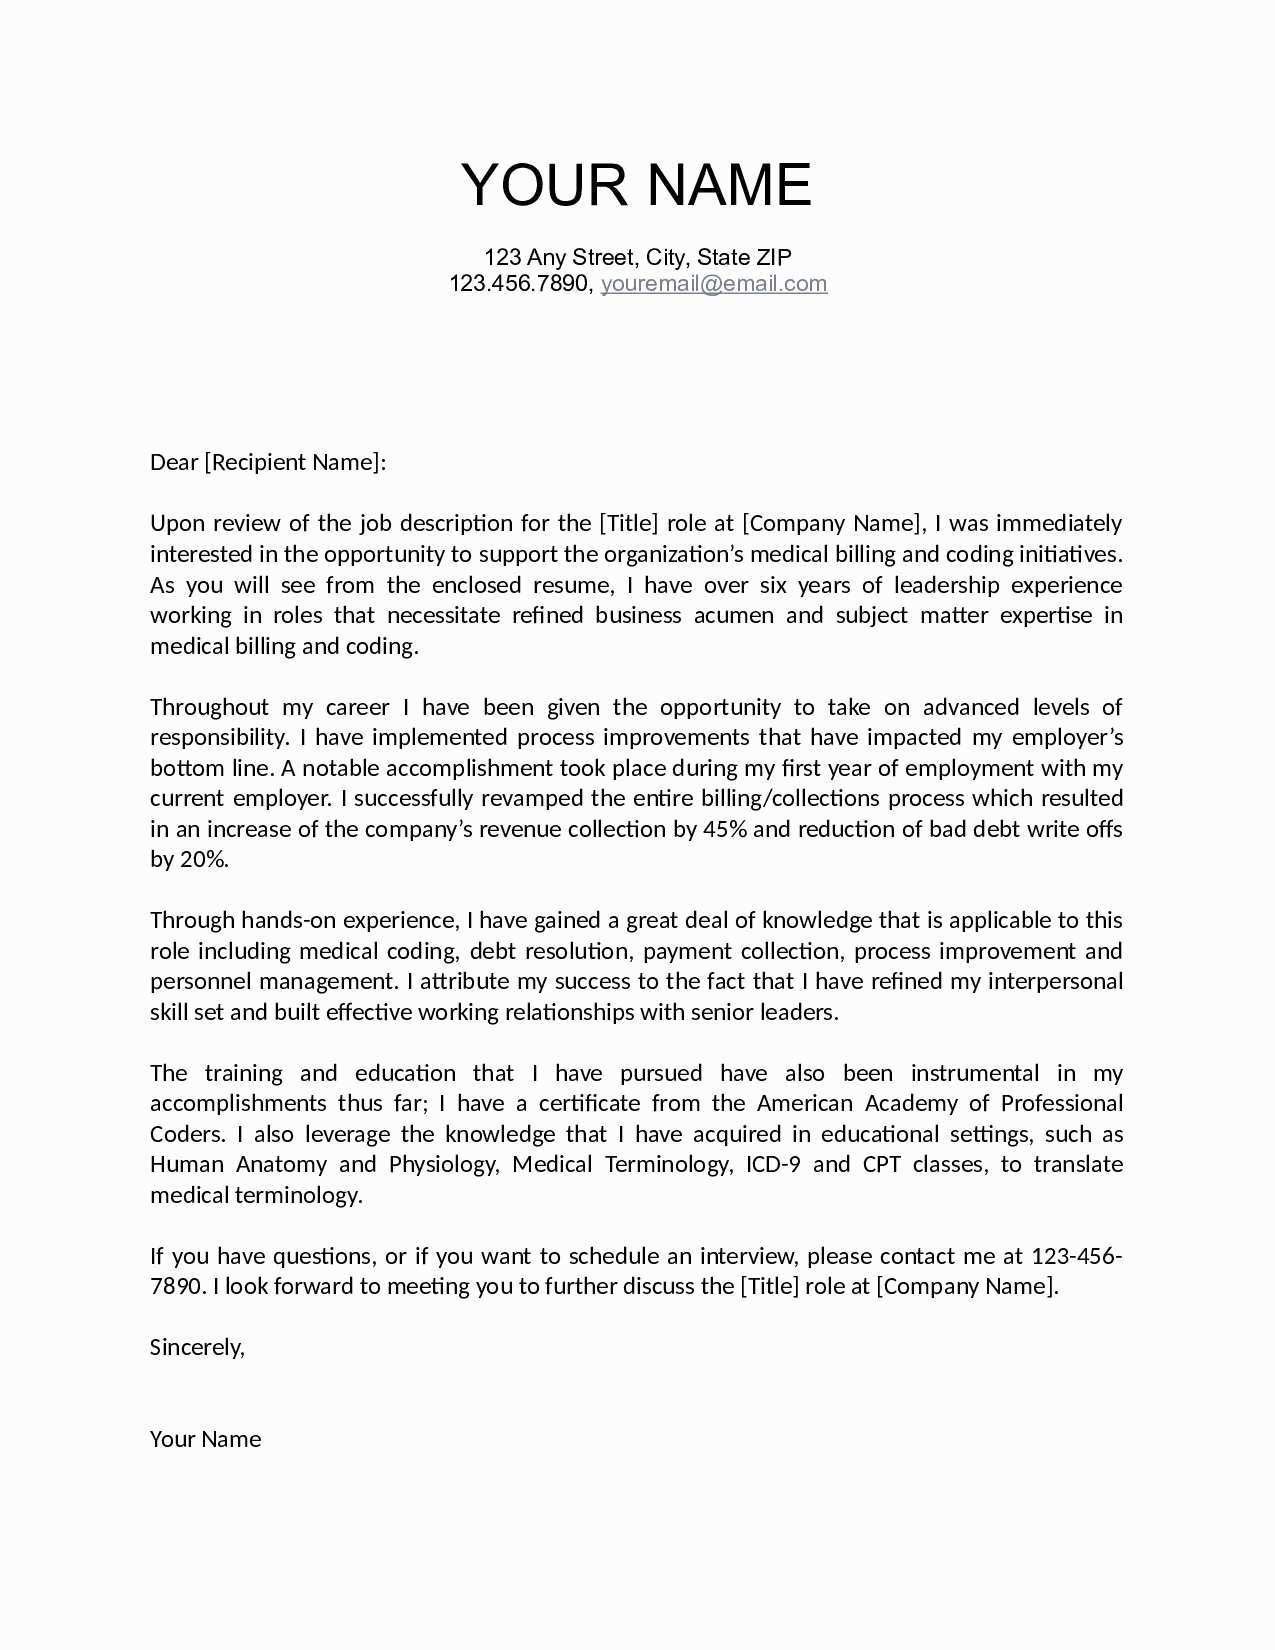 Program Introduction Letter Template - Cover Letter to Show Interest In Job